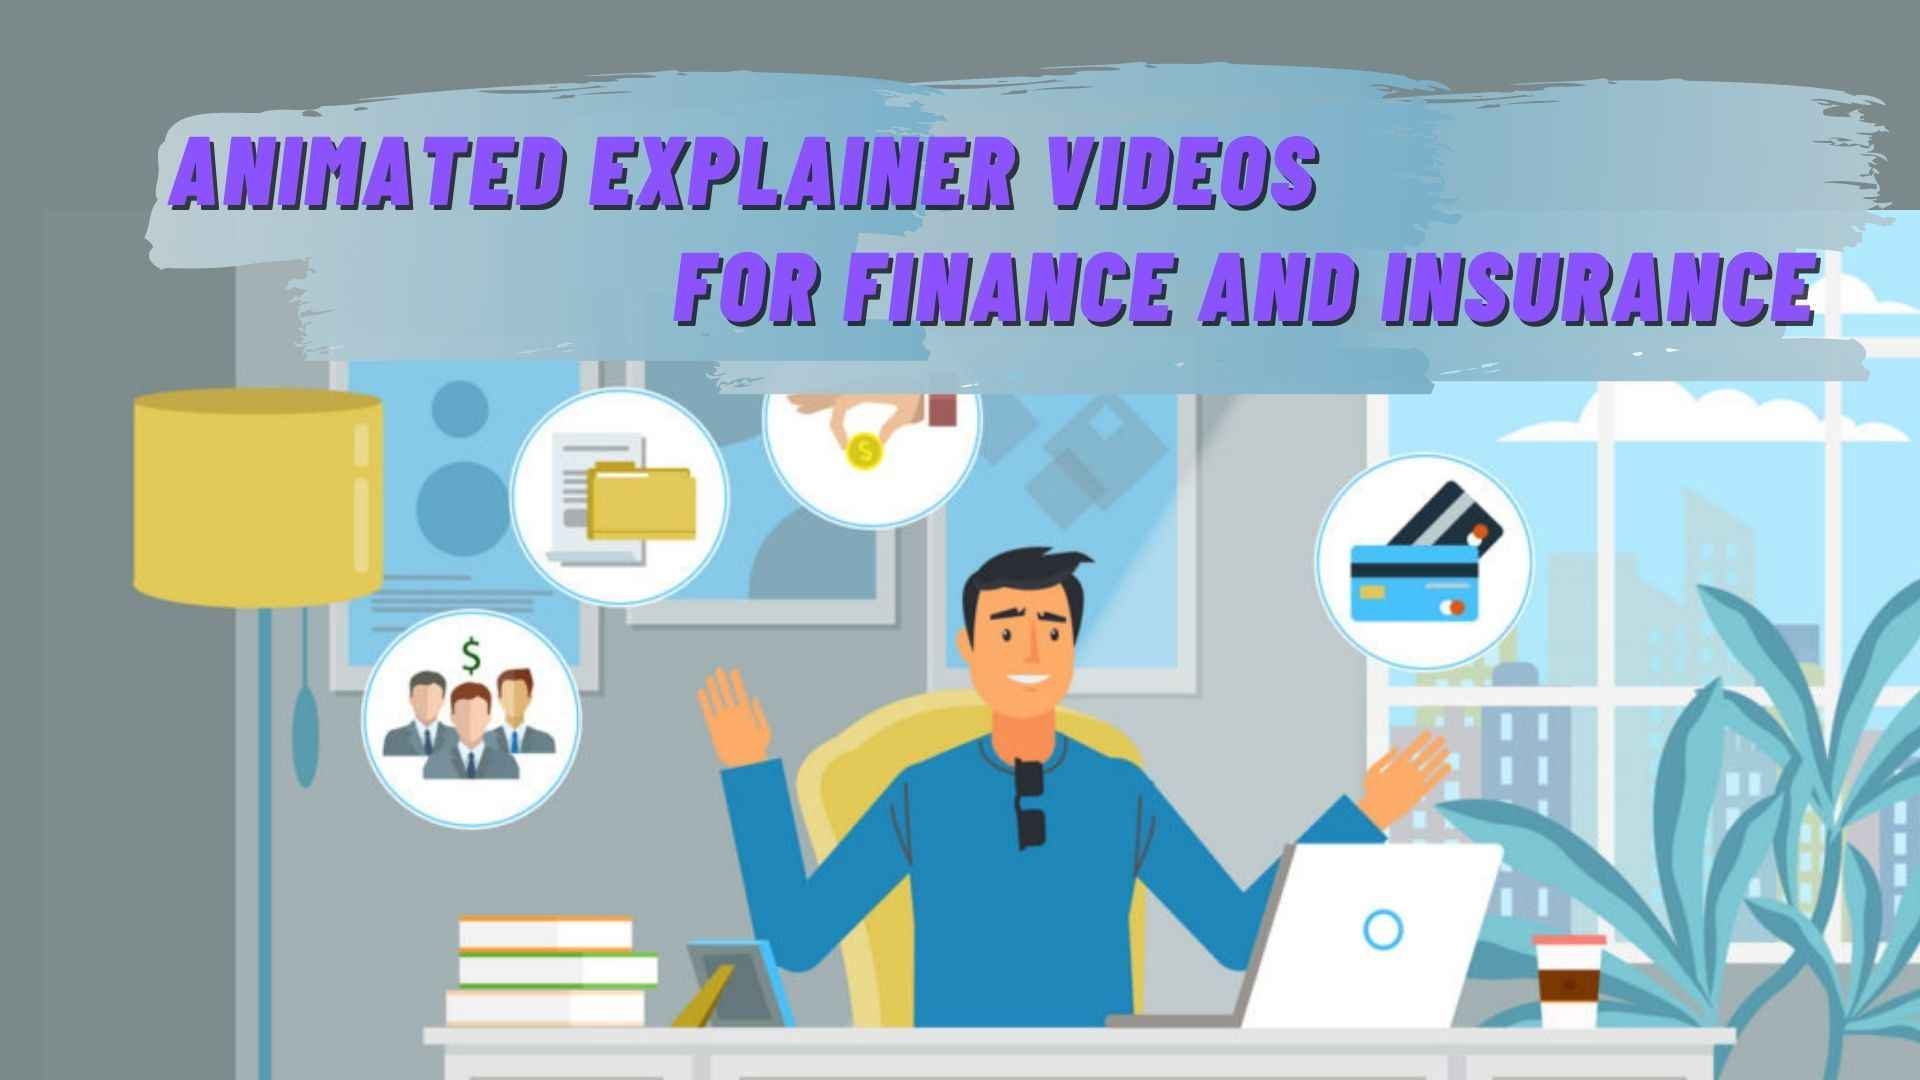 Animated explainer videos for Finance and Insurance